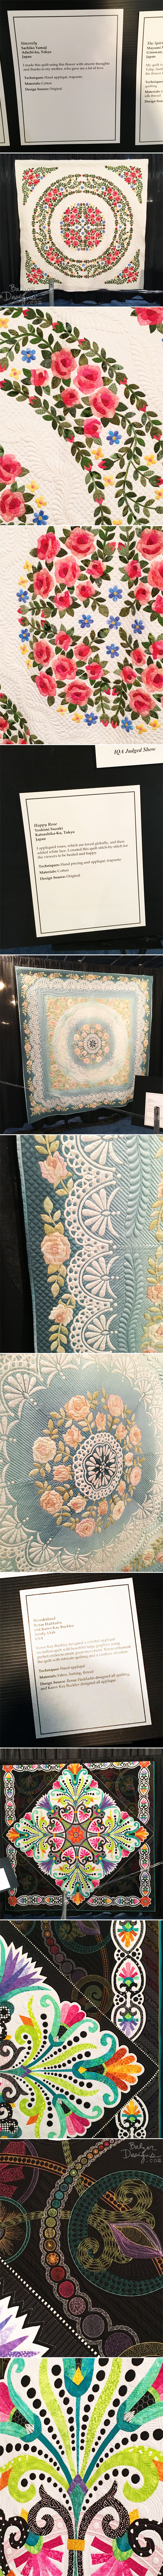 From the Balzer Designs Blog: Quilt Festival 2017: Part Seven